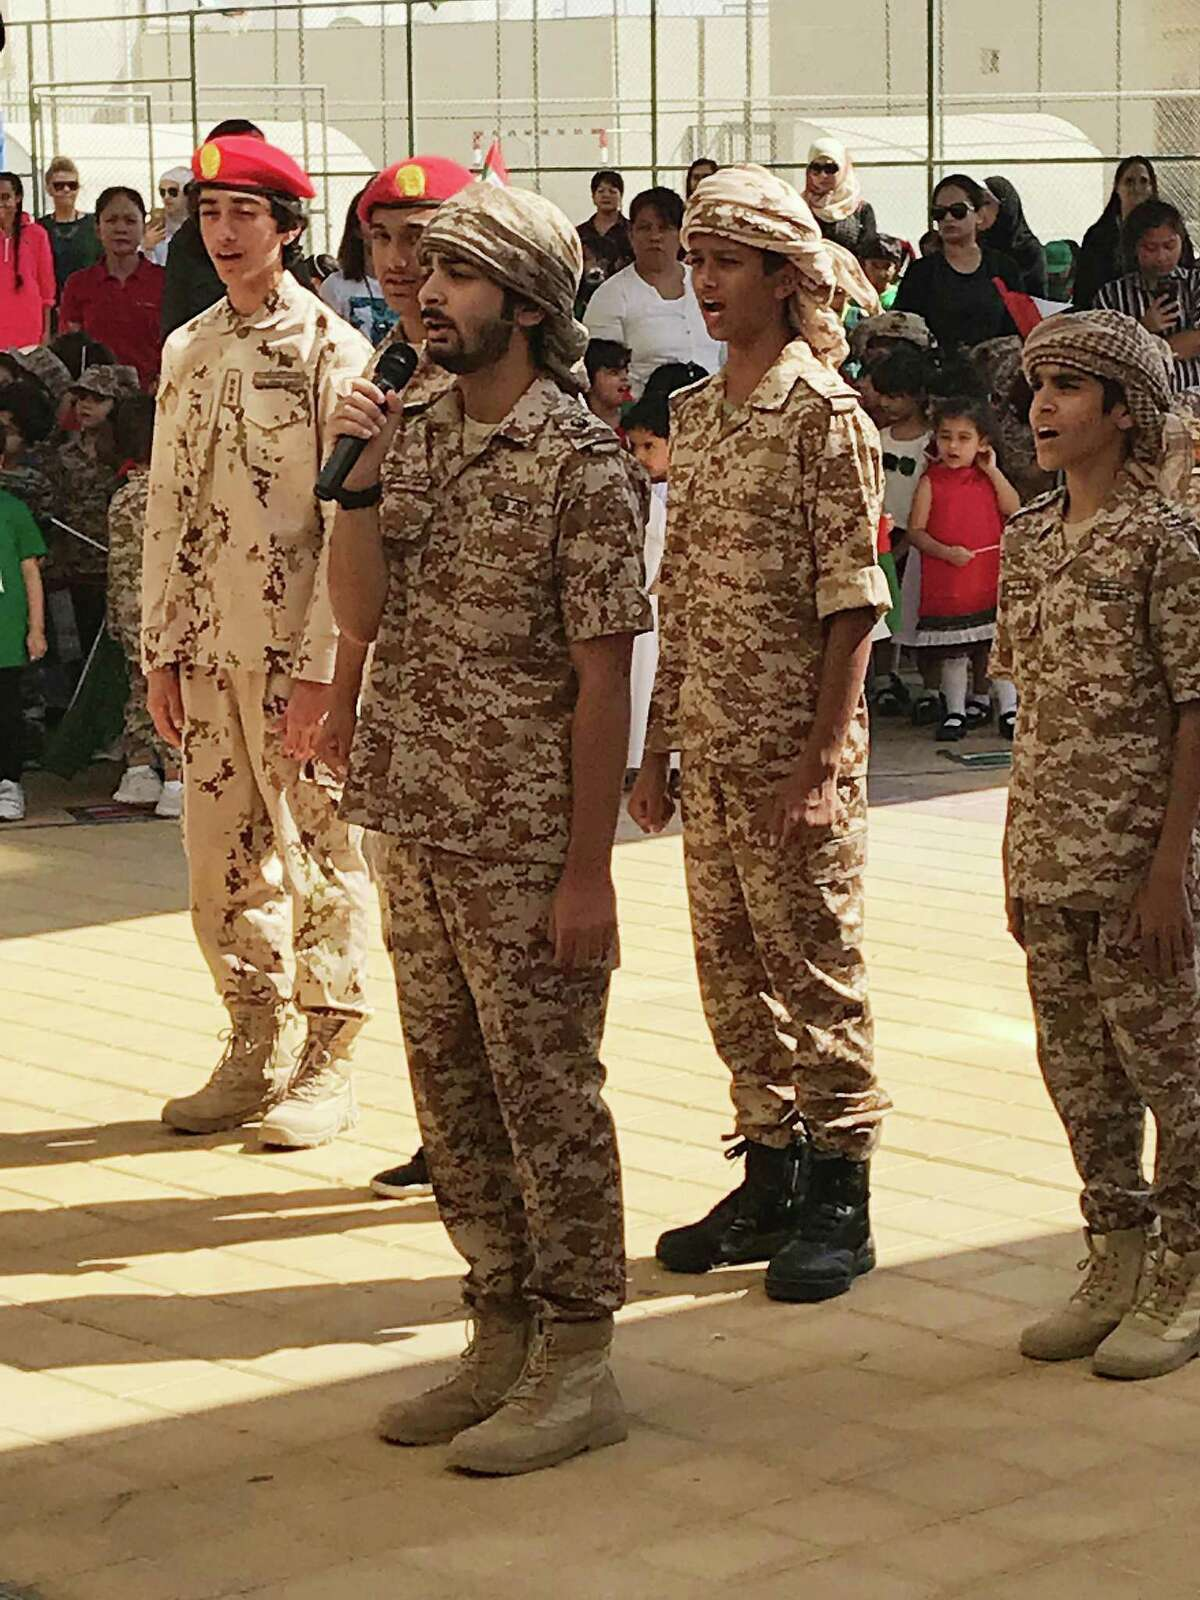 Ninth-grade boys at a school in the United Arab Emirates lead the singing of the national anthem before hoisting the flag -- something everyone was encouraged to do at precisely 11 a.m. on Nov. 1, Flag Day.